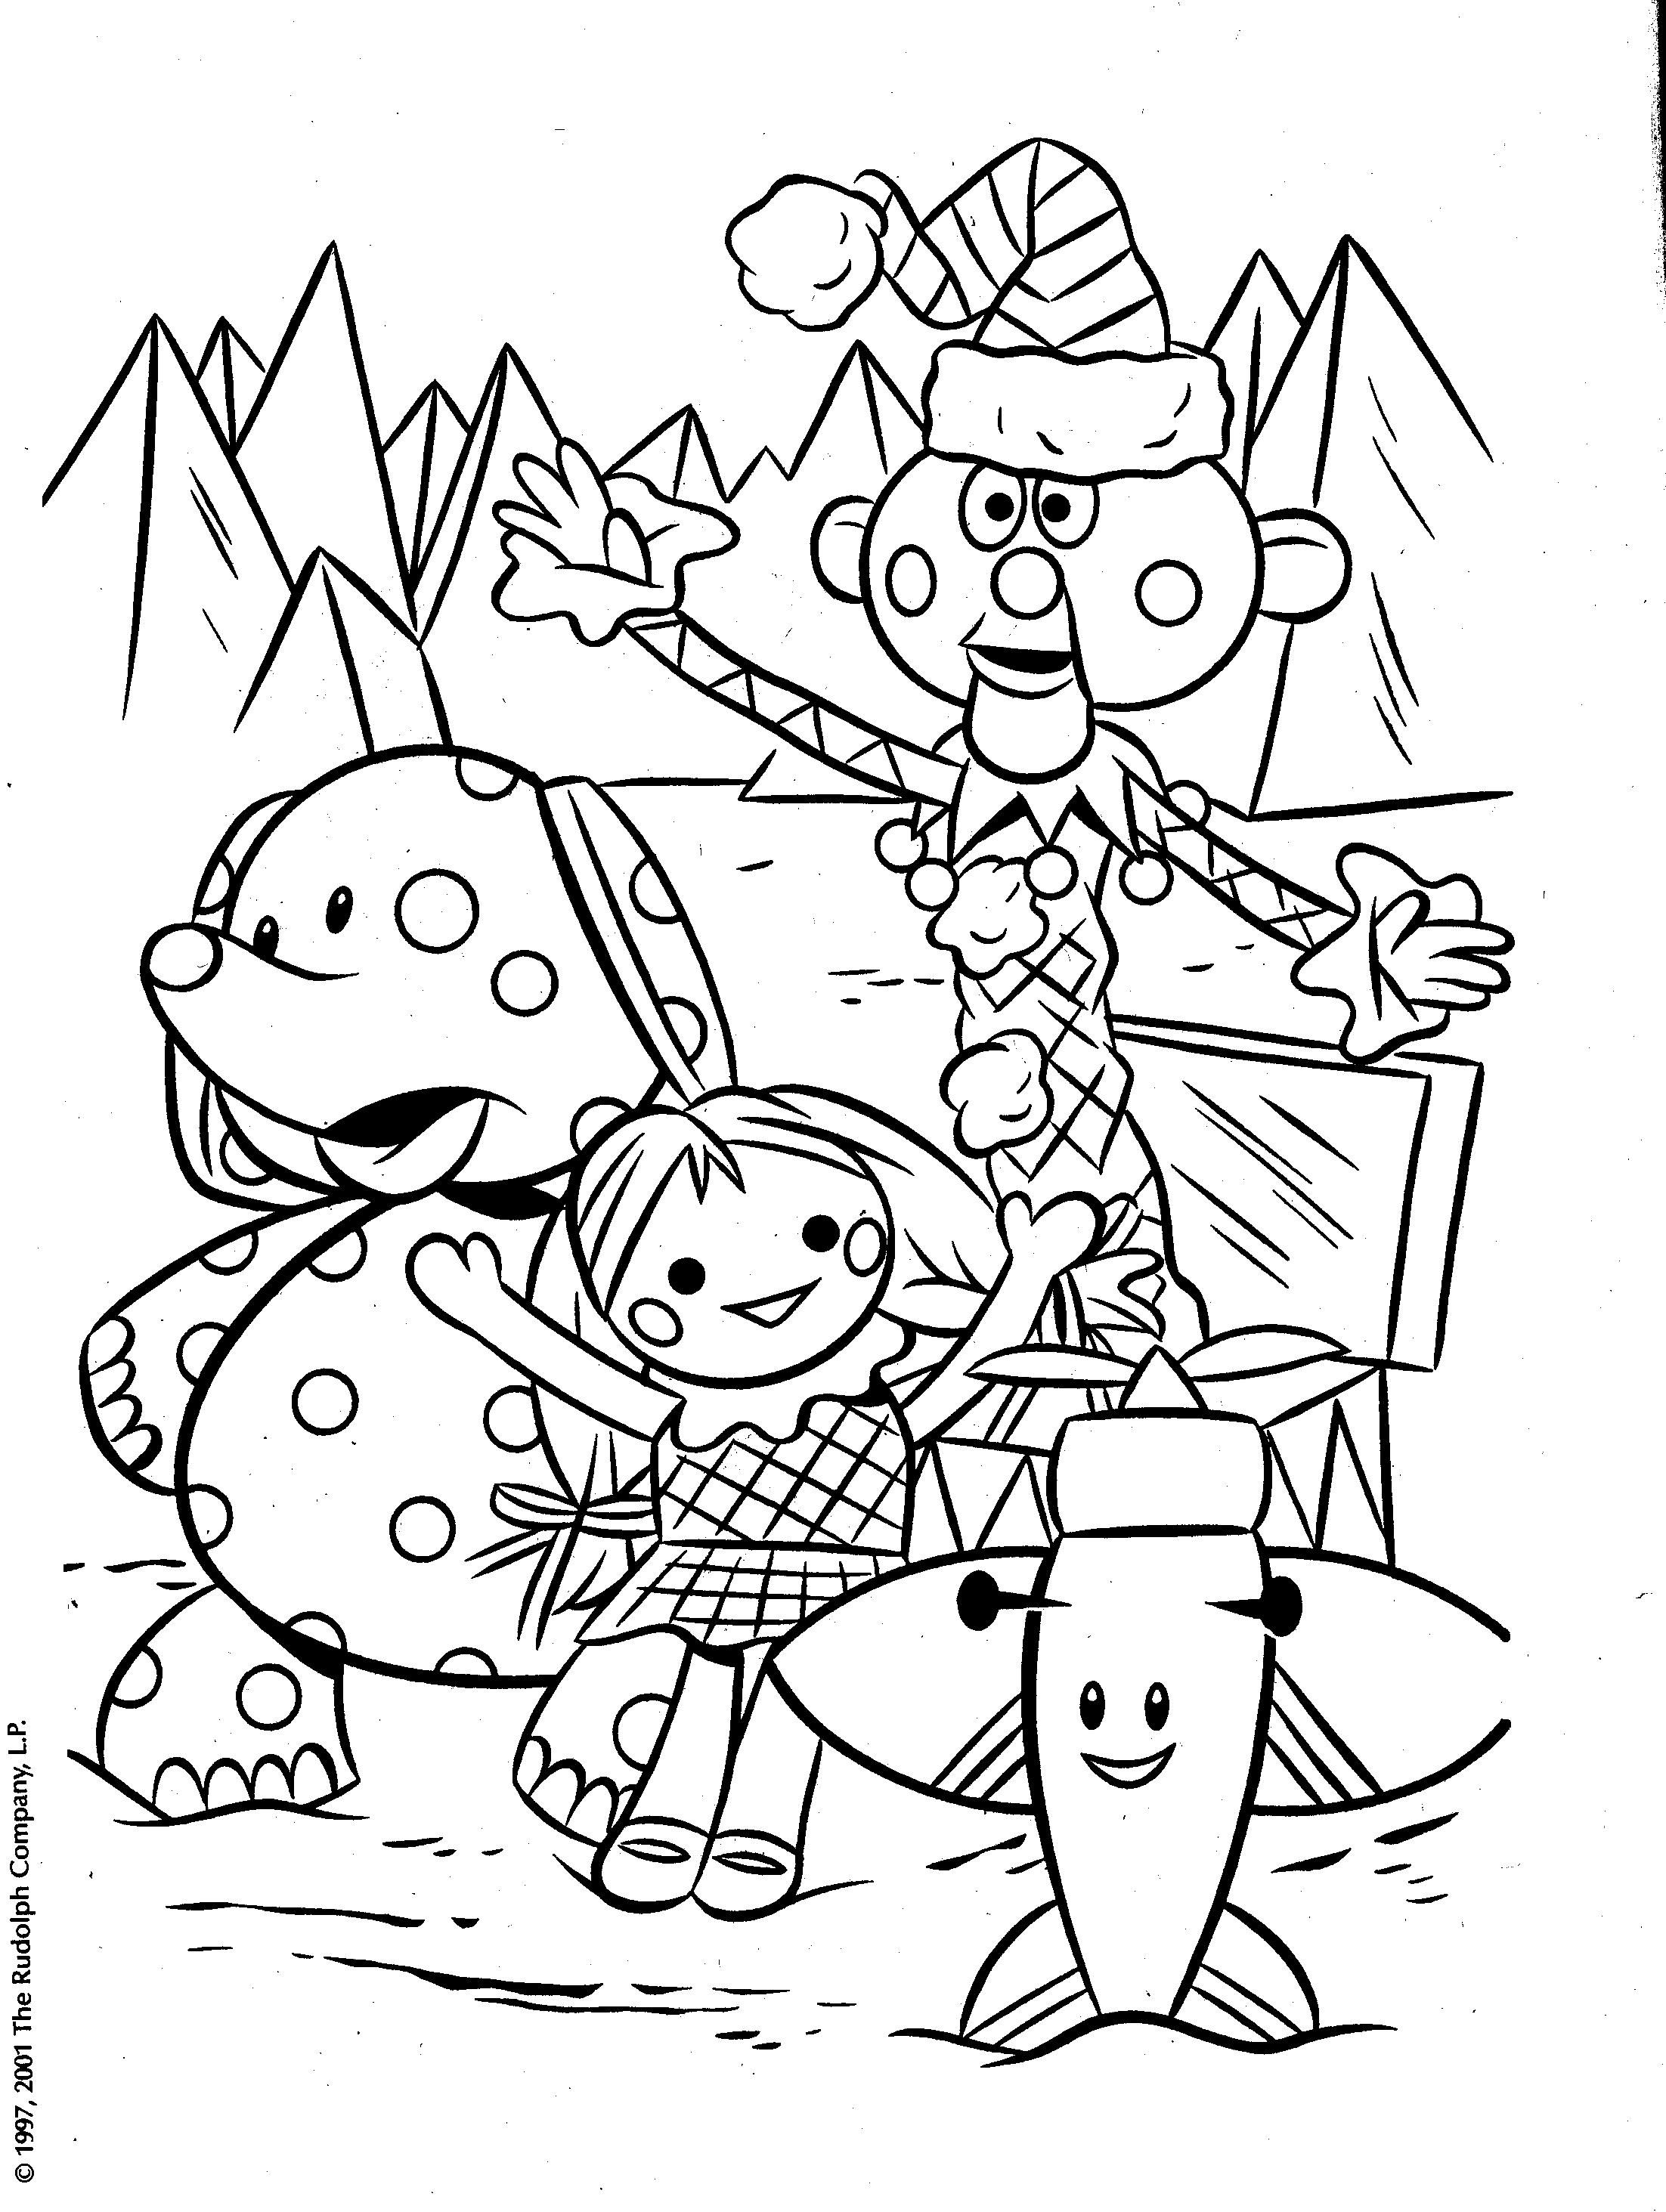 From A Rudolph Coloring Book Of The Misfit Toys Rudolph Coloring Pages Cartoon Coloring Pages Disney Coloring Pages